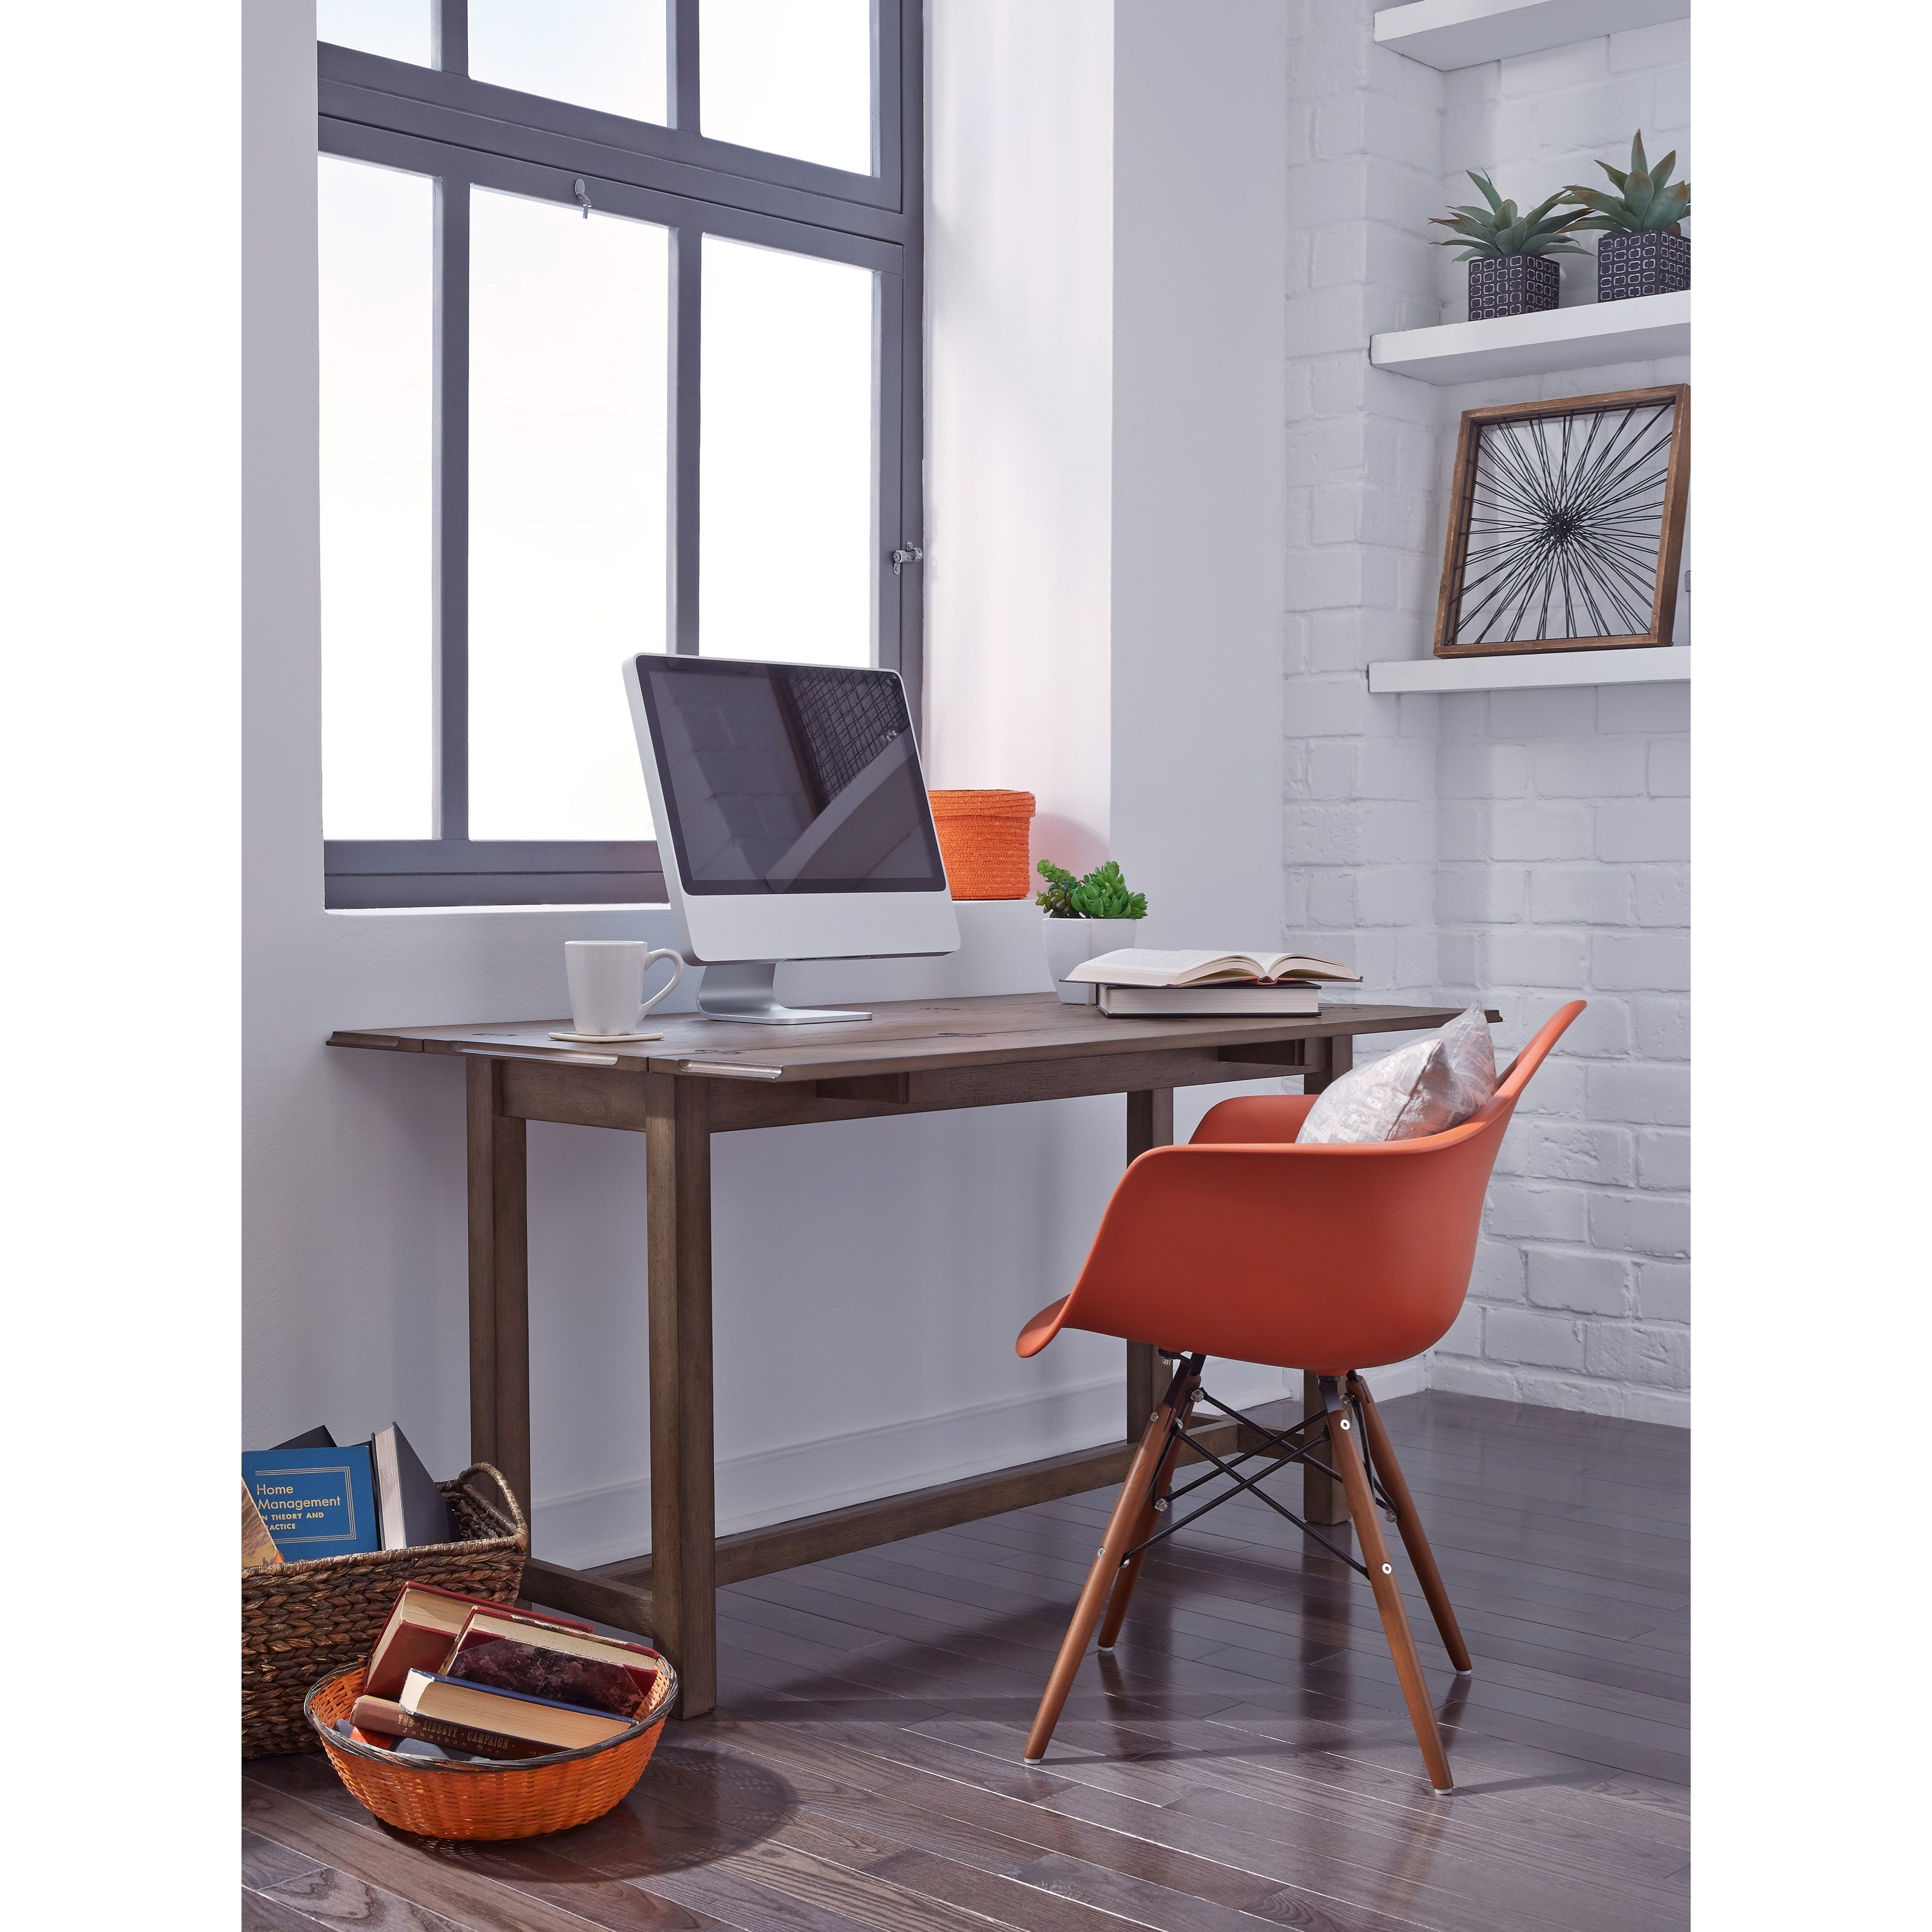 Terrace Point Drop Leaf Sofa Table by Aspenhome at Walker's Furniture